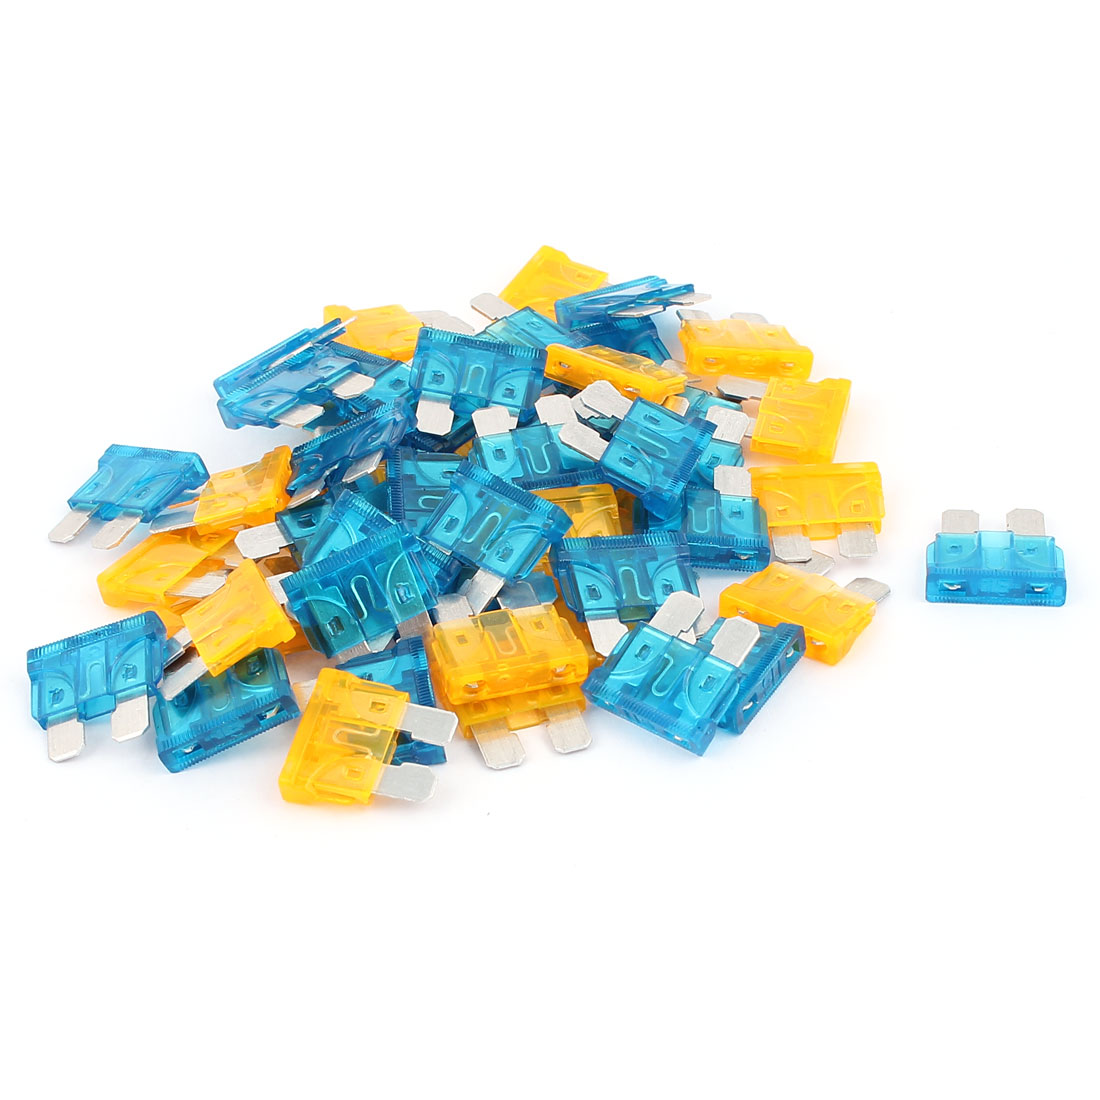 50pcs Motorbike Automotive Car Caravan Truck Vehicle Mini Blade Fuses 15A 5A Blue Orange